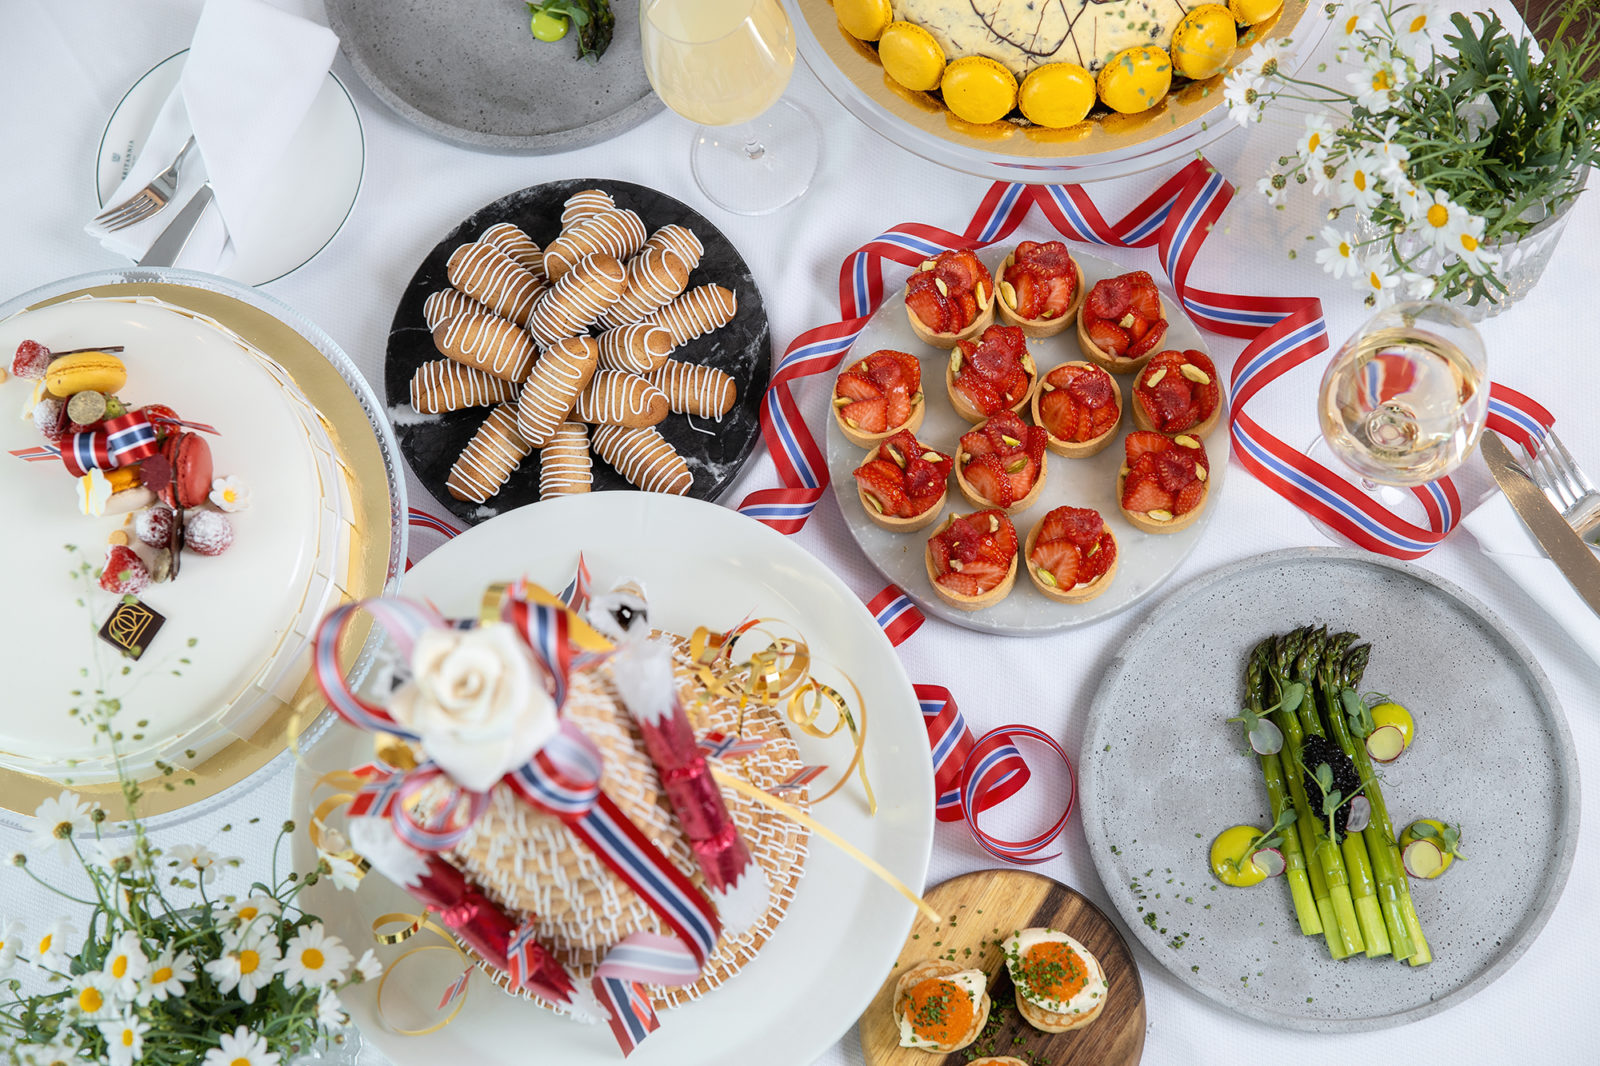 Britannia Hotel's 17th May buffet for take away, with savoury and sweet favourites